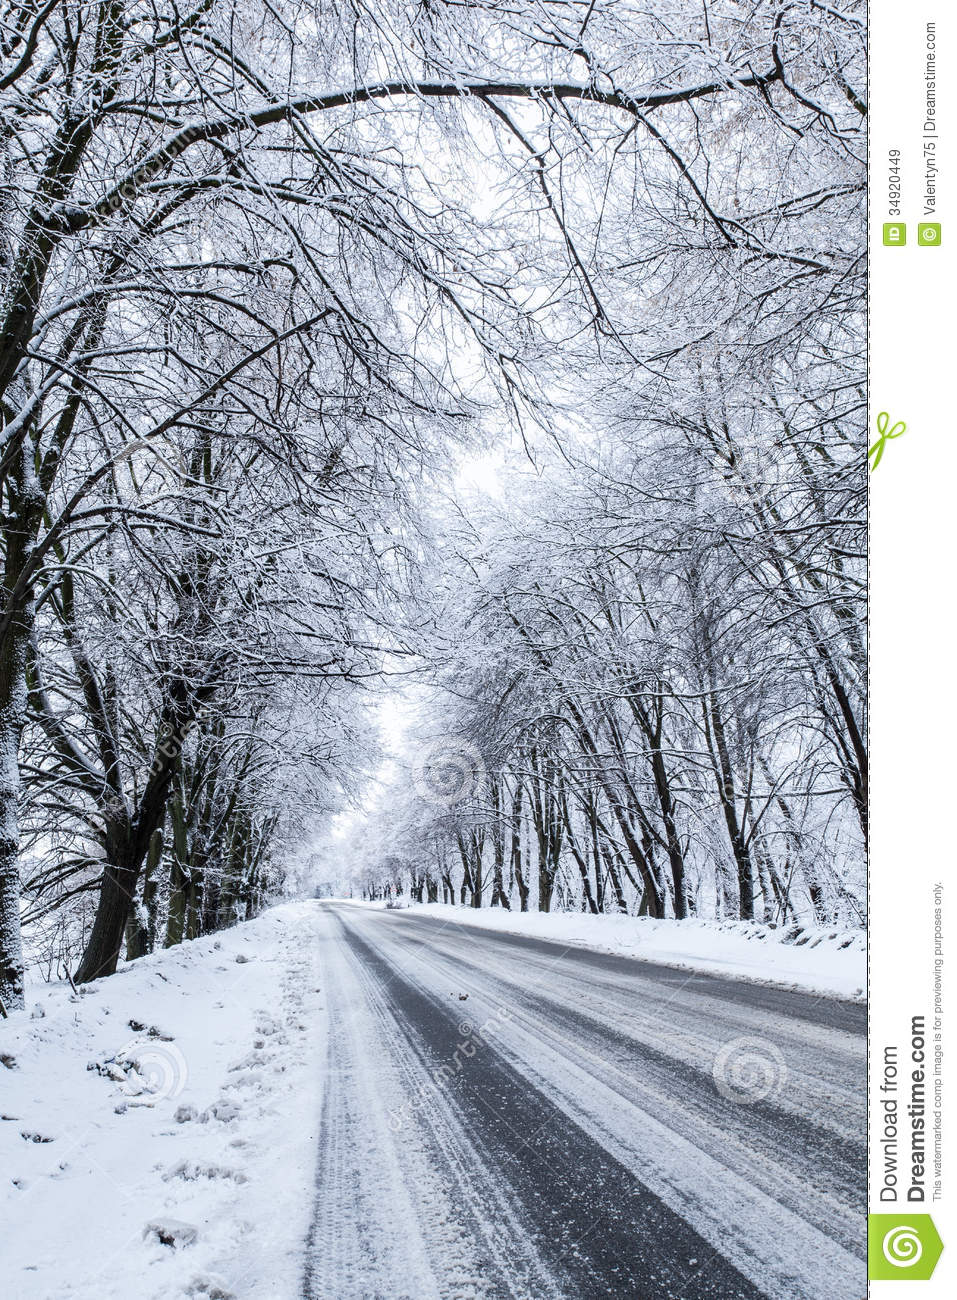 Free Download Of Christmas Wallpaper With Snow Falling Country Snow Road Royalty Free Stock Images Image 34920449